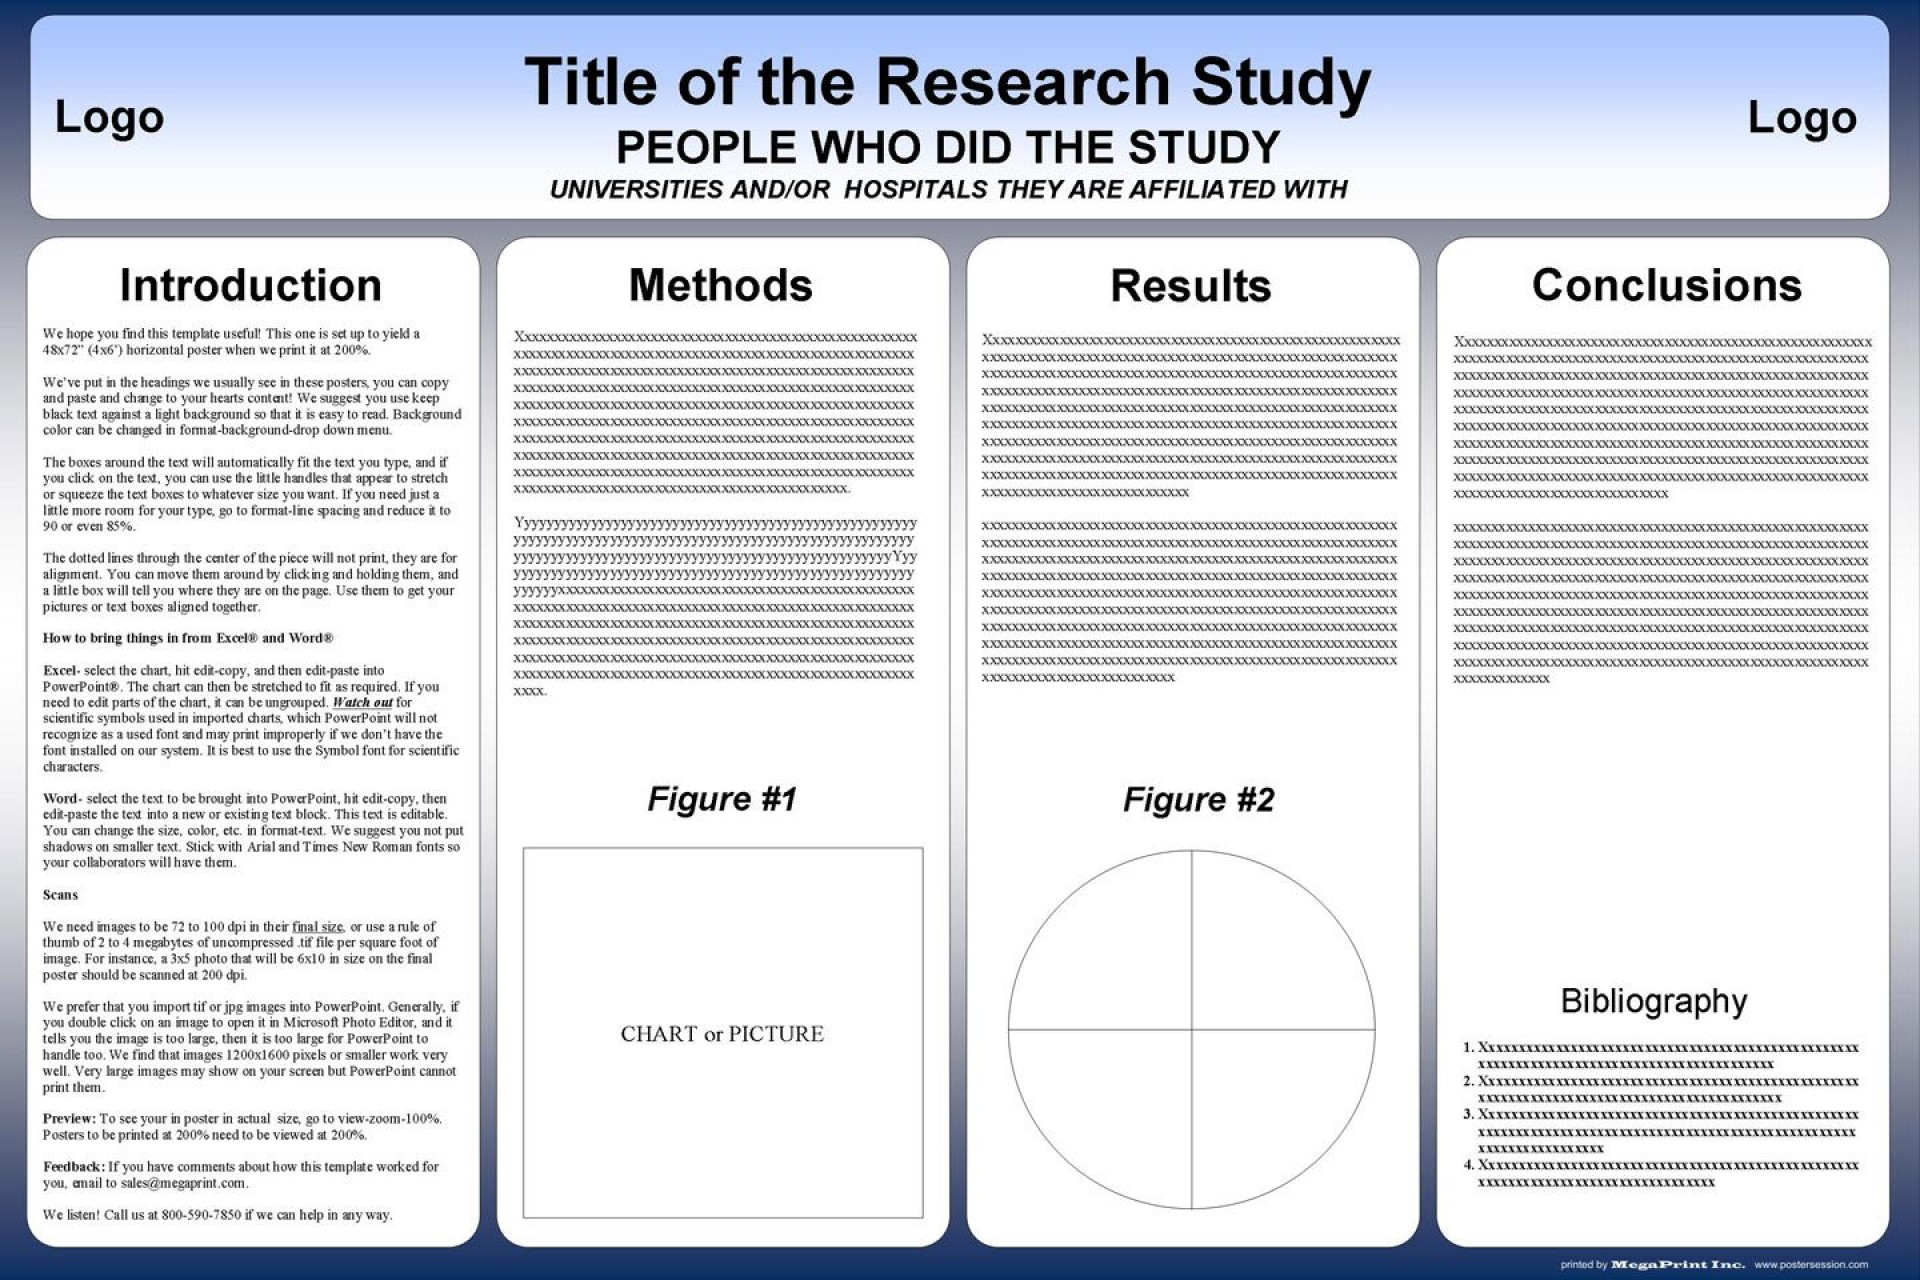 002 Awesome Scientific Poster Design Template Free Download 1920